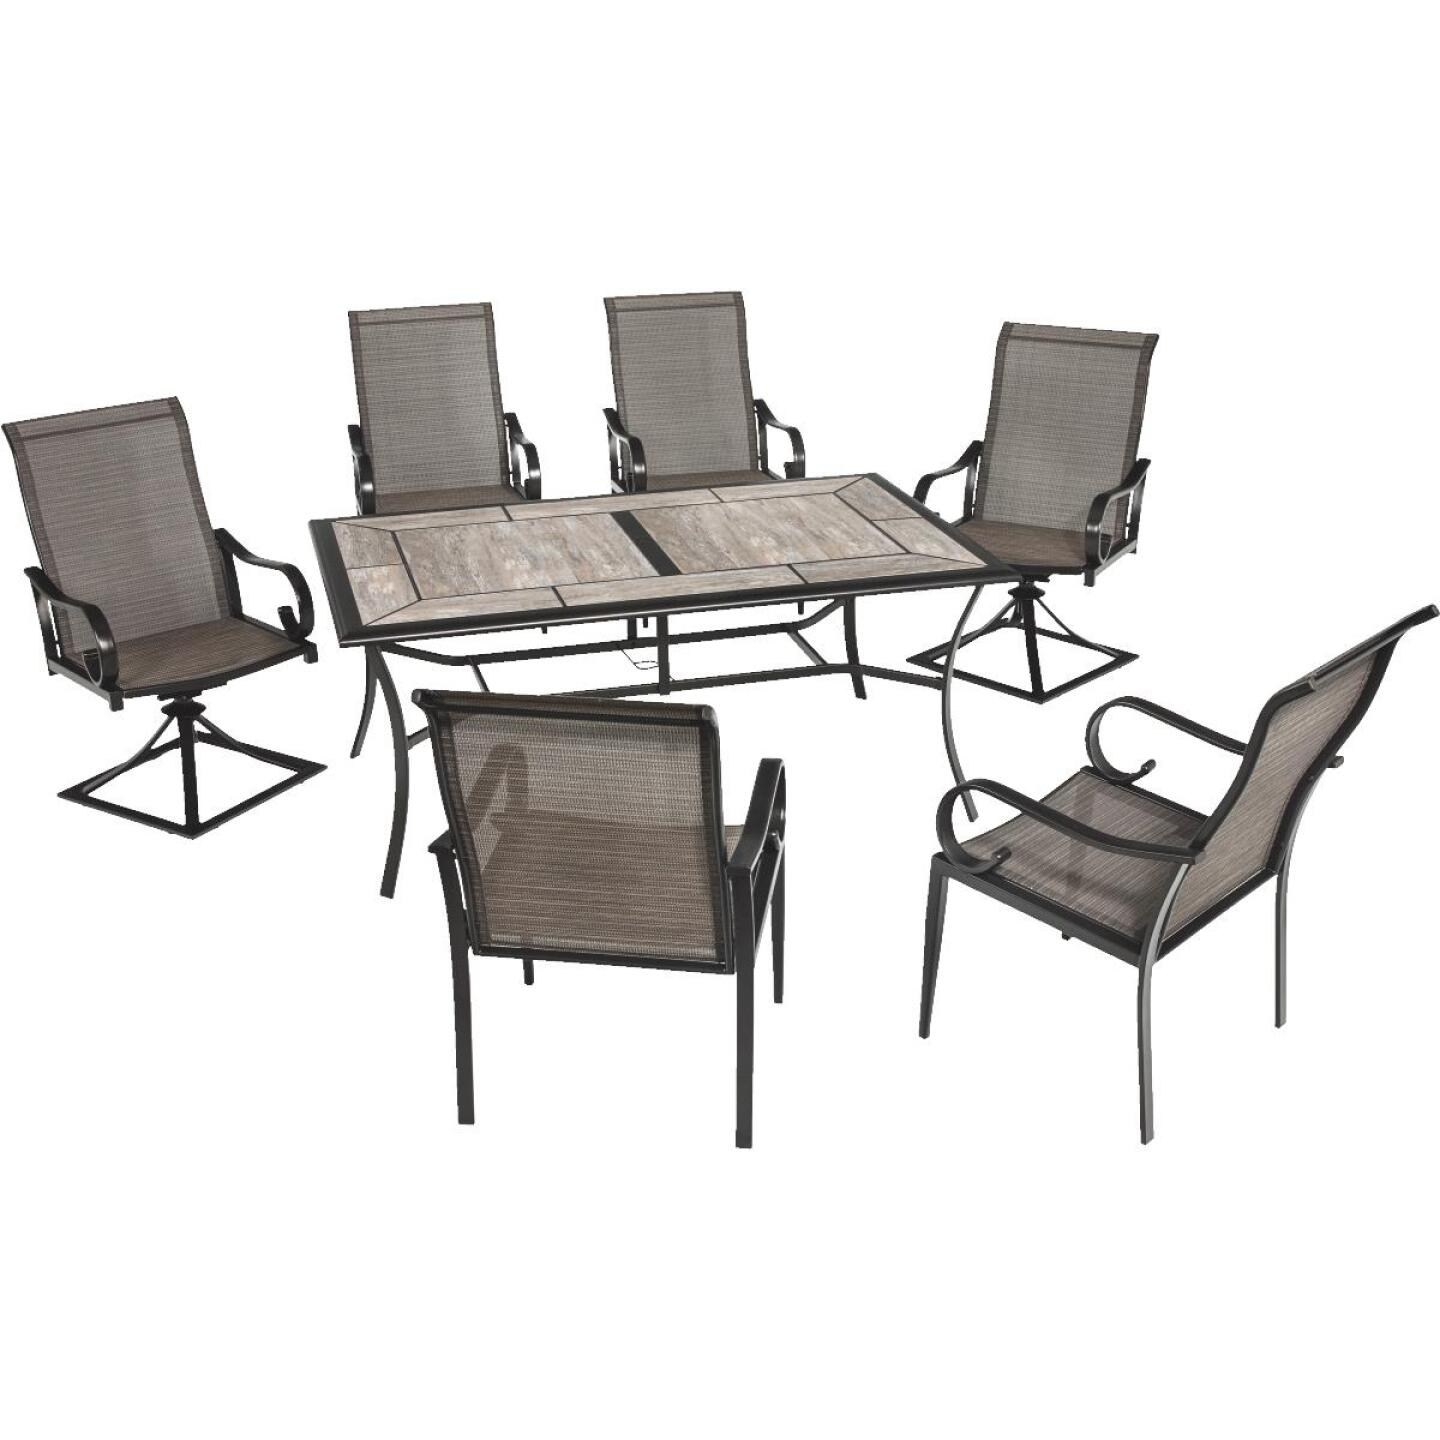 Outdoor Expressions Berkshire 7-Piece Dining Set Image 170